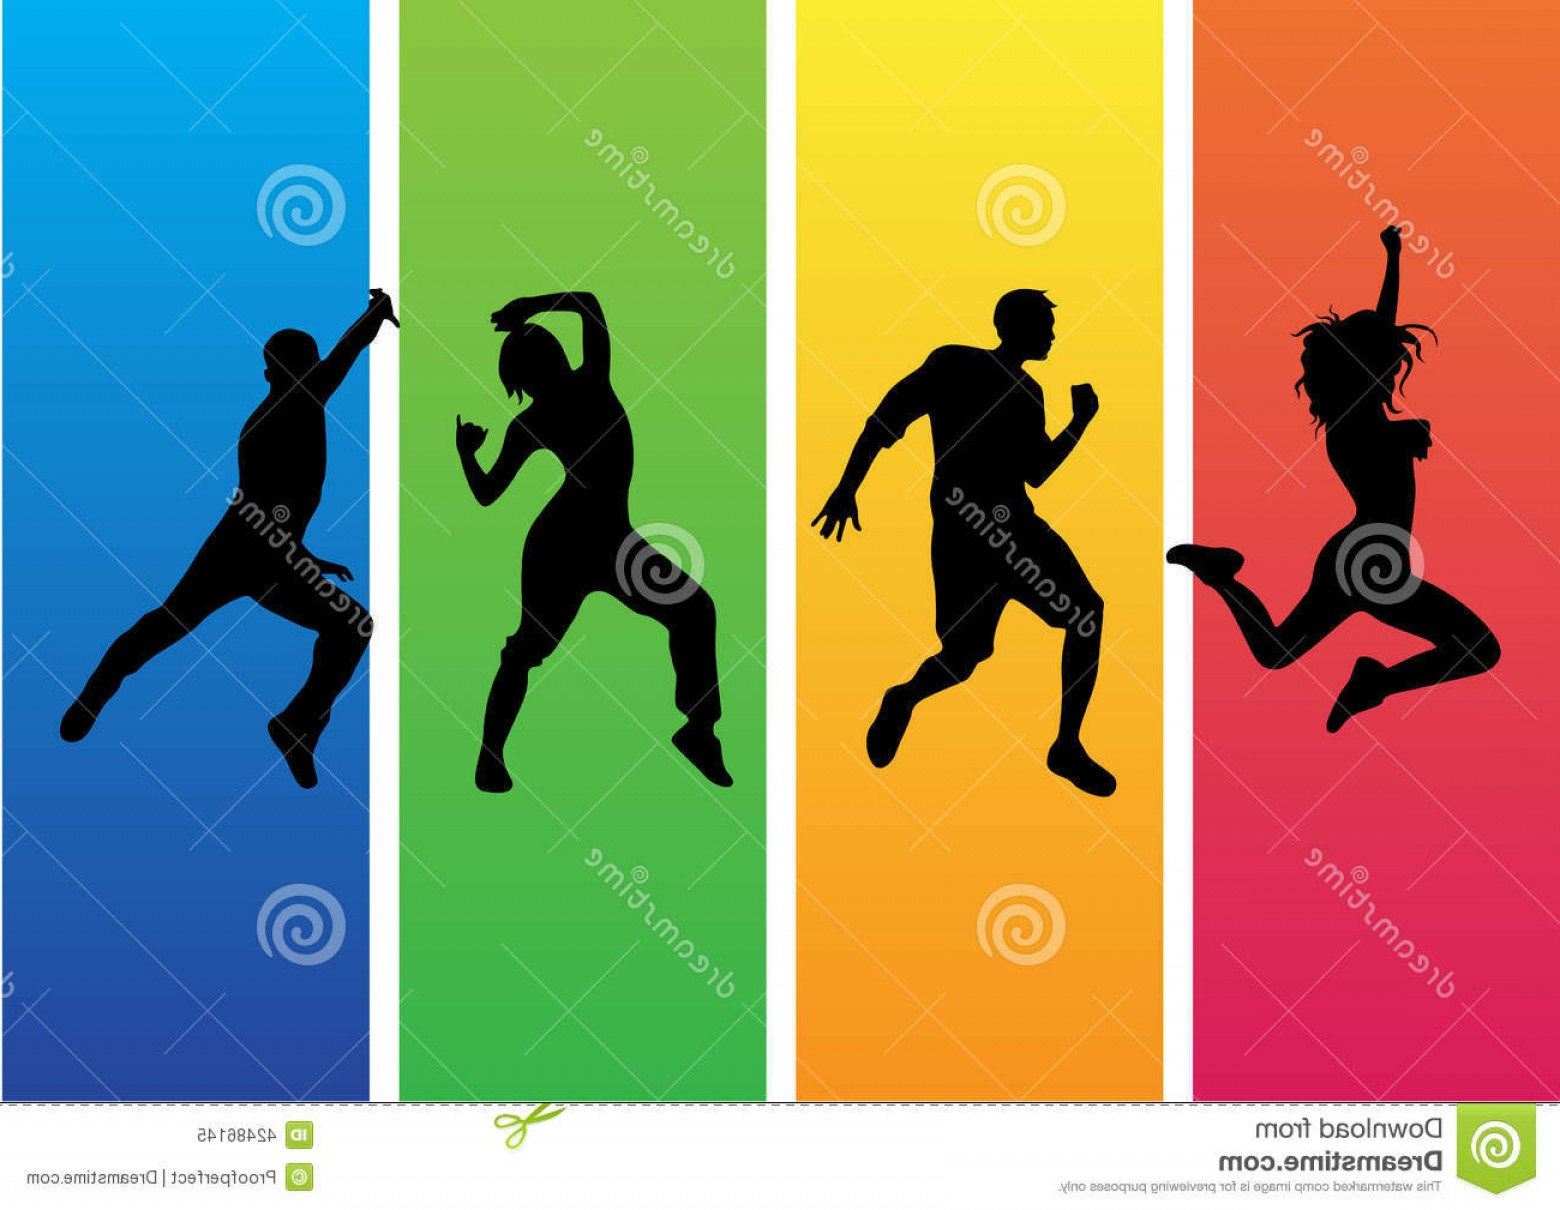 Zumba Vector Illustration: Stock Illustration Zumba Dance Silhouette Vector Energetic Silhouettes Men Woman Dancing Image